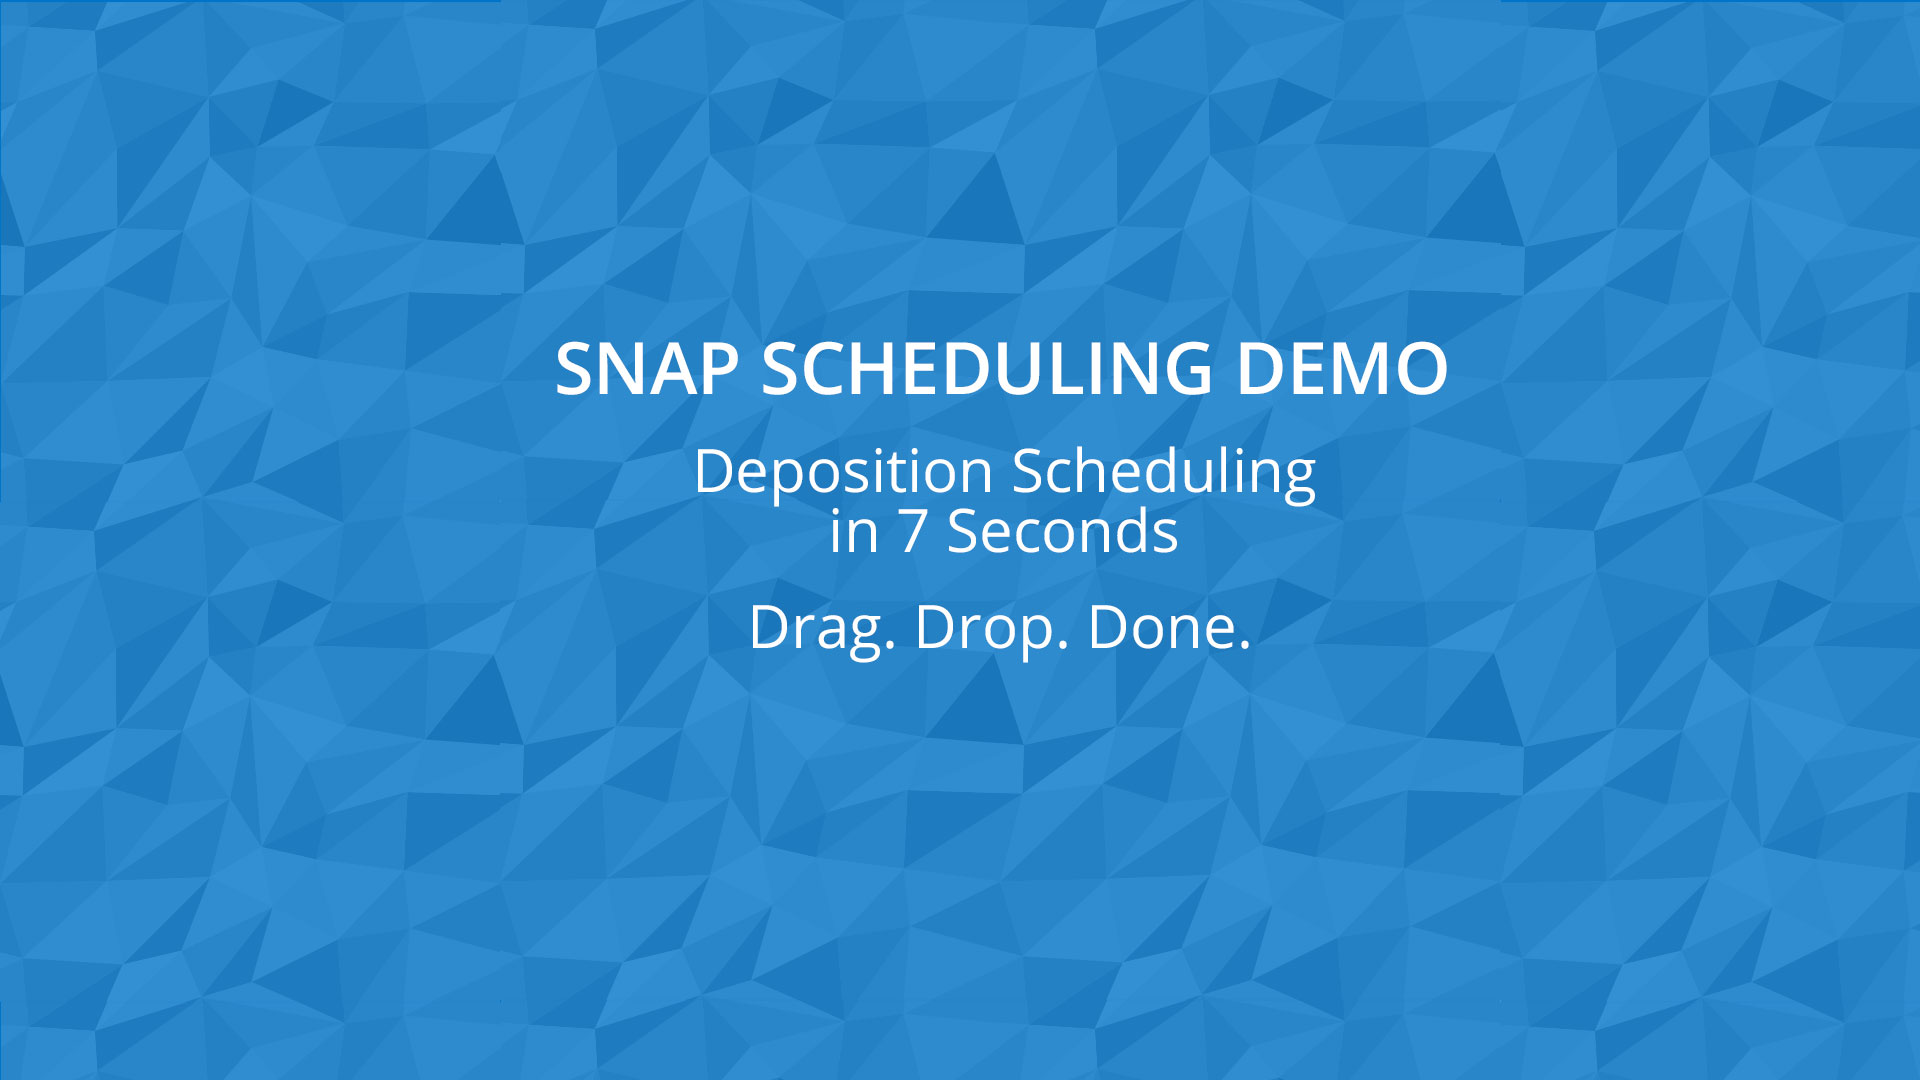 Snap Scheduling Demo - Deposition Scheduling in Seconds